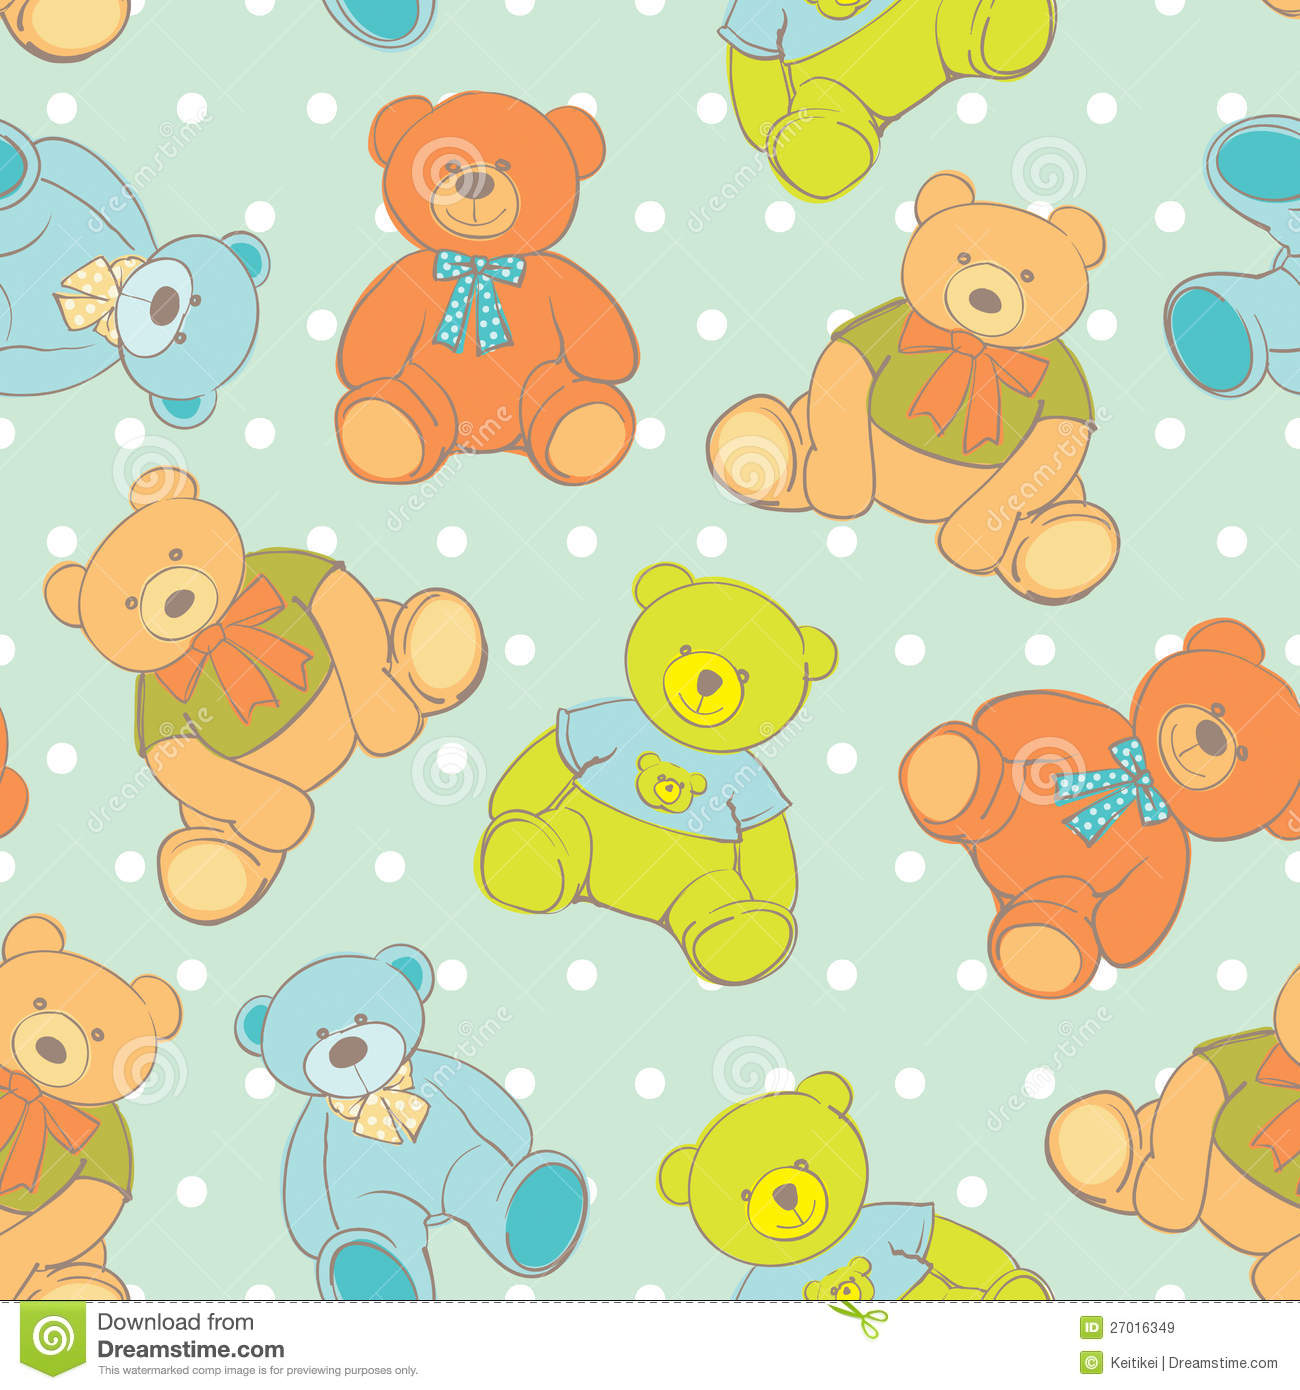 Teddy Bear Seamless Pattern Stock Vector Illustration Of Stuffed